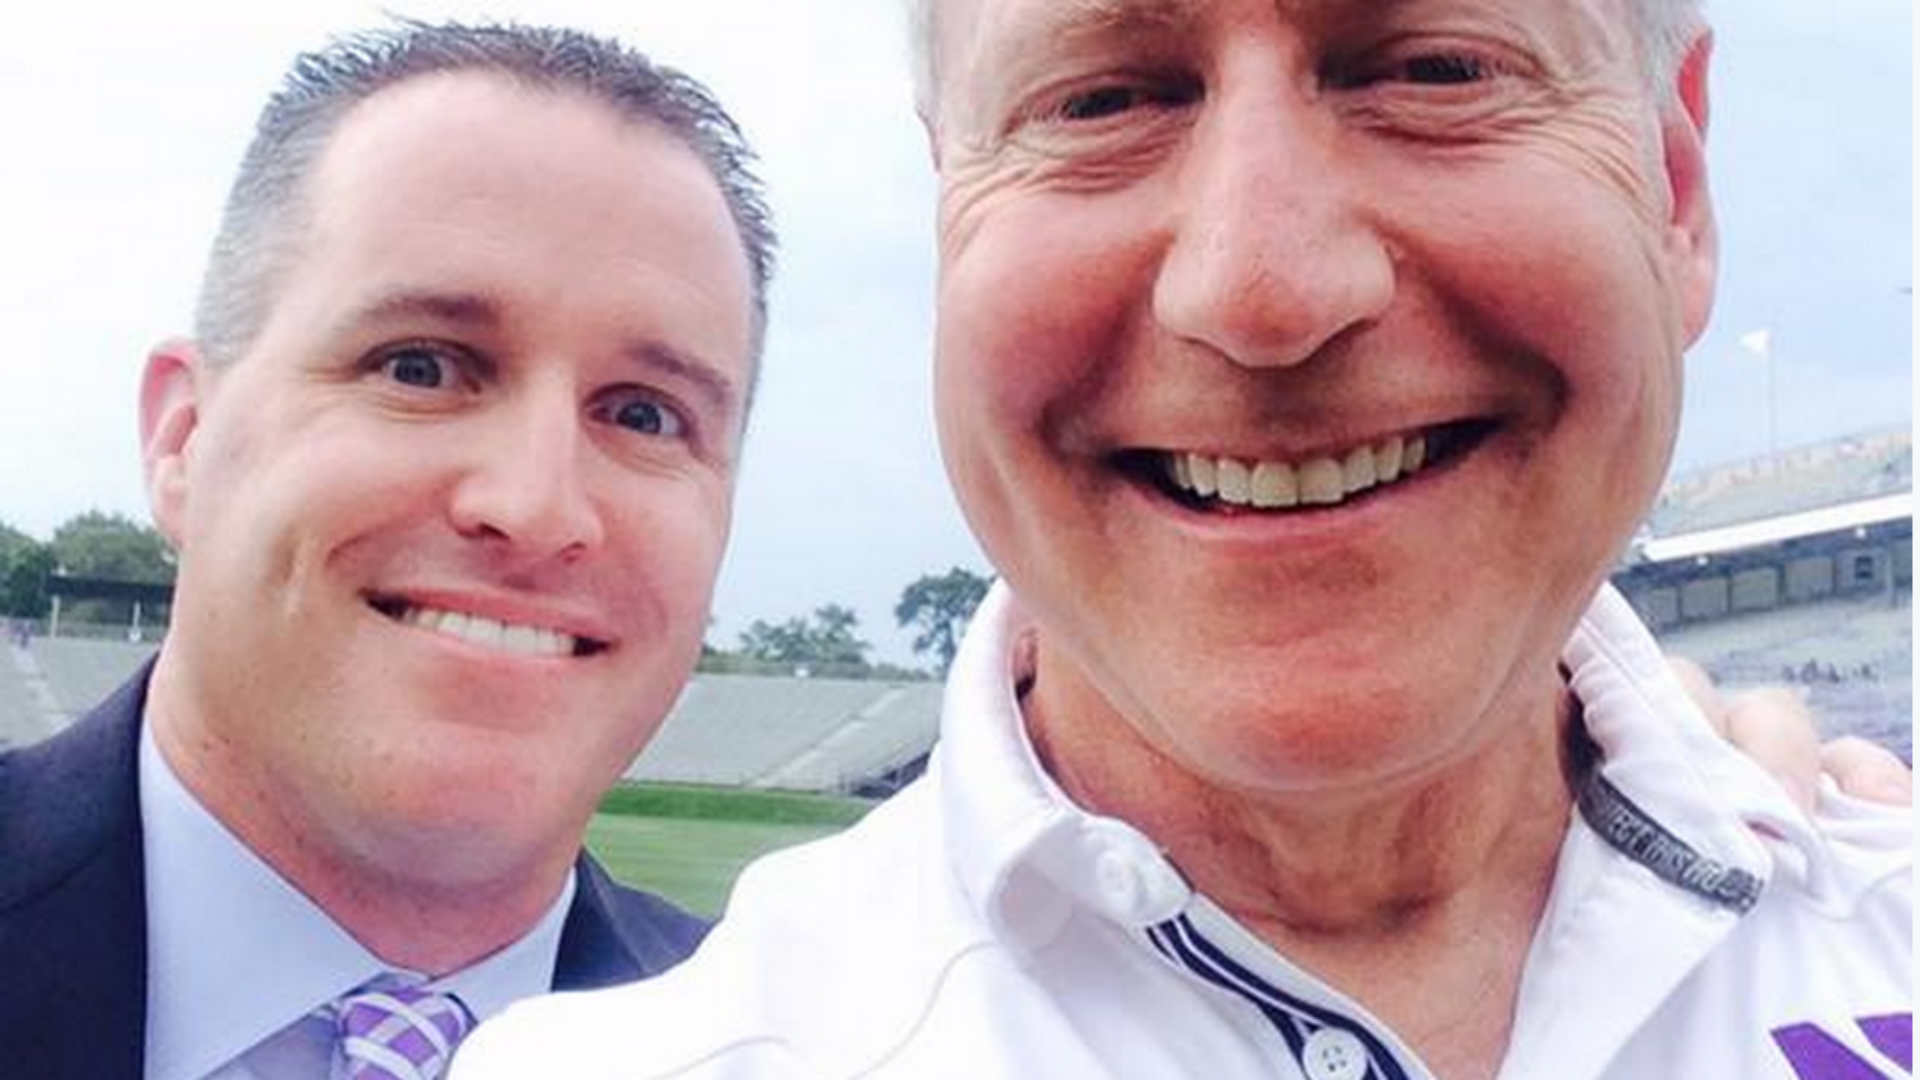 Selfies and signed football with Pat Fitzgerald? That'll cost you $125 |  NCAA Football | Sporting News